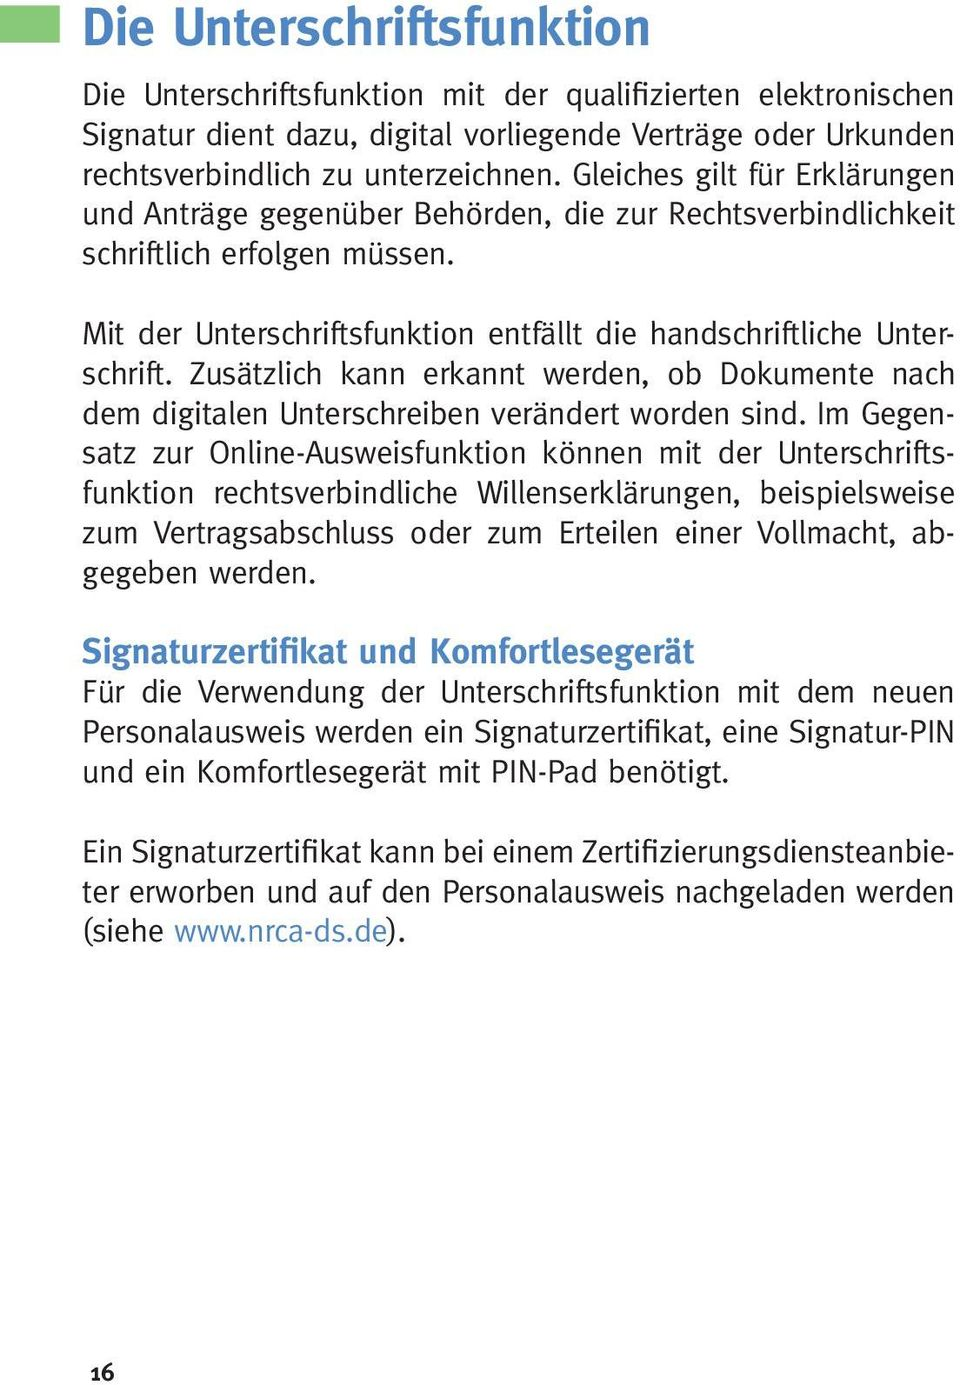 ausweis online funktion